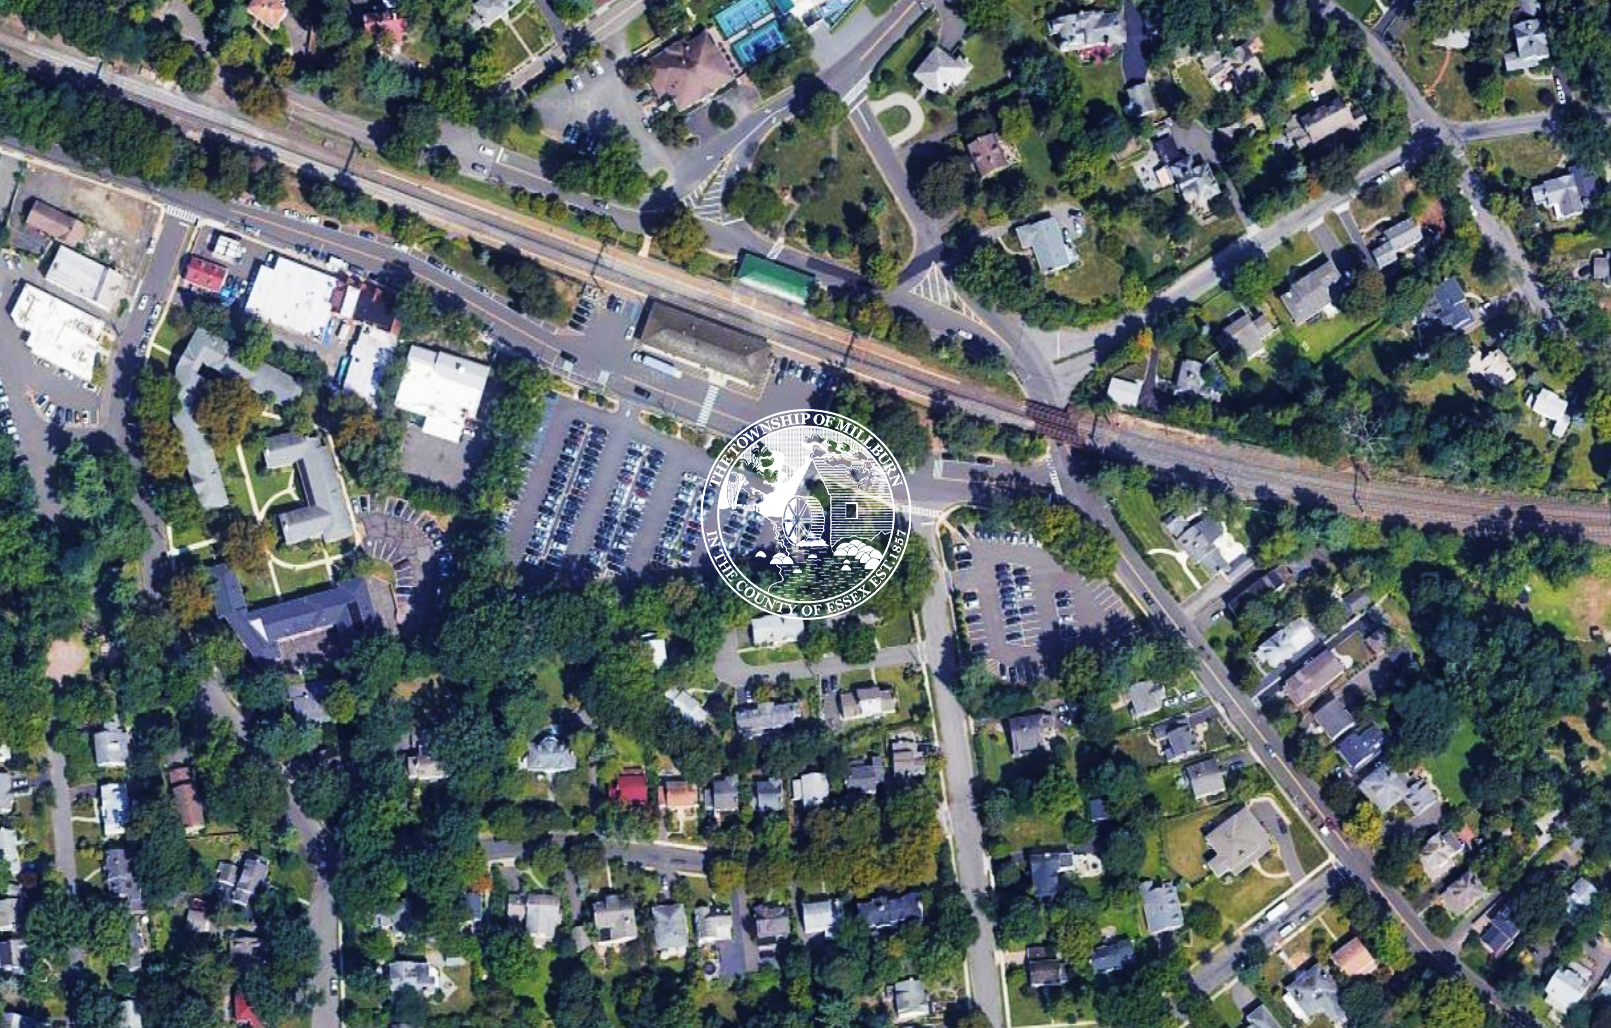 Aerial view of Short Hills Train Station parking lots